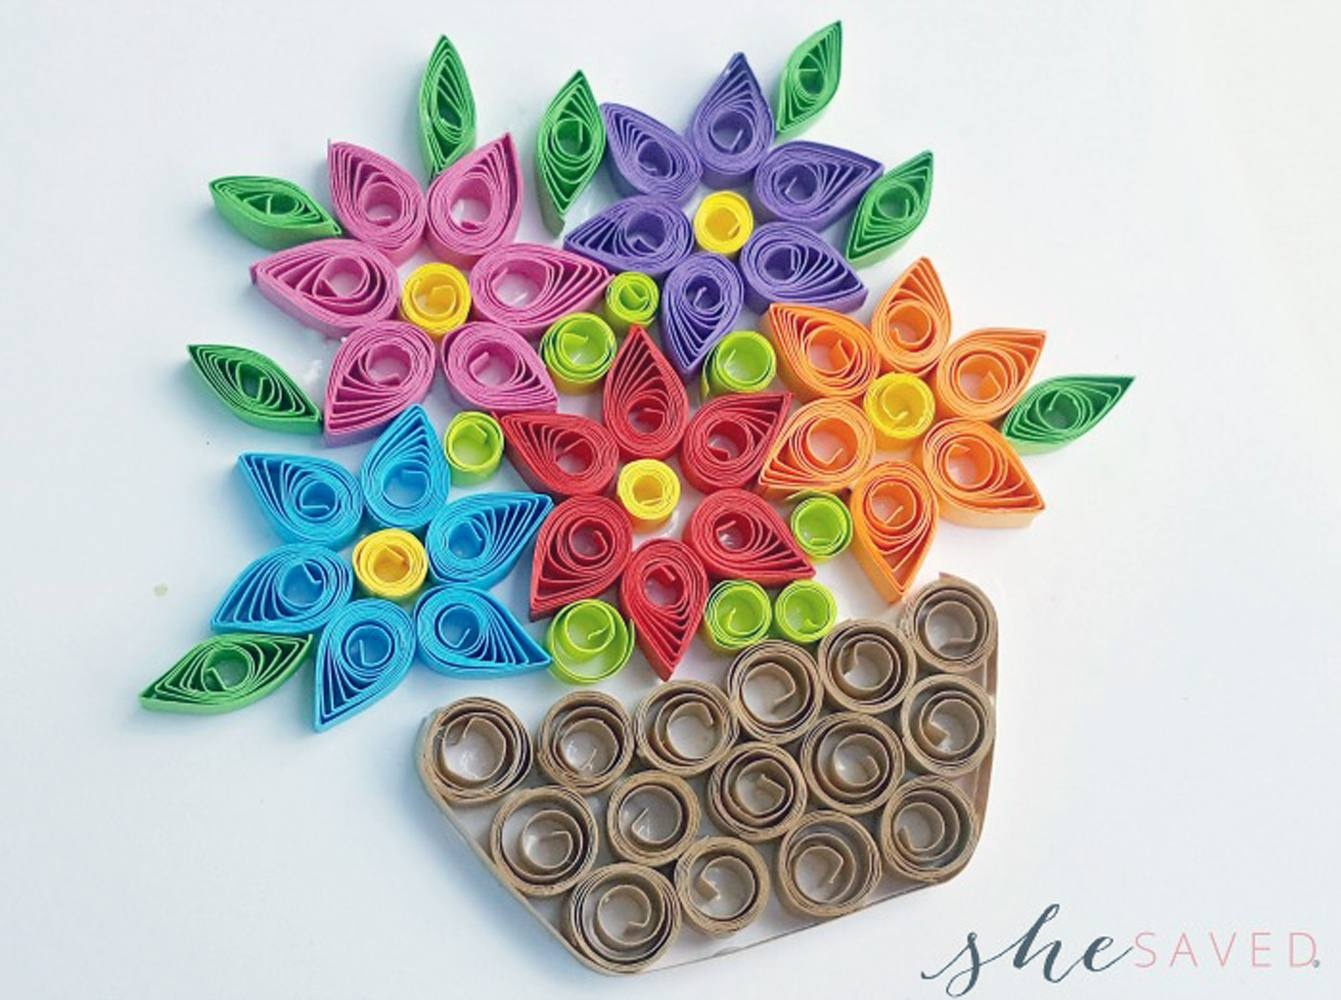 11 Paper Quilling Patterns For Beginners - Free Printable Quilling Patterns Designs